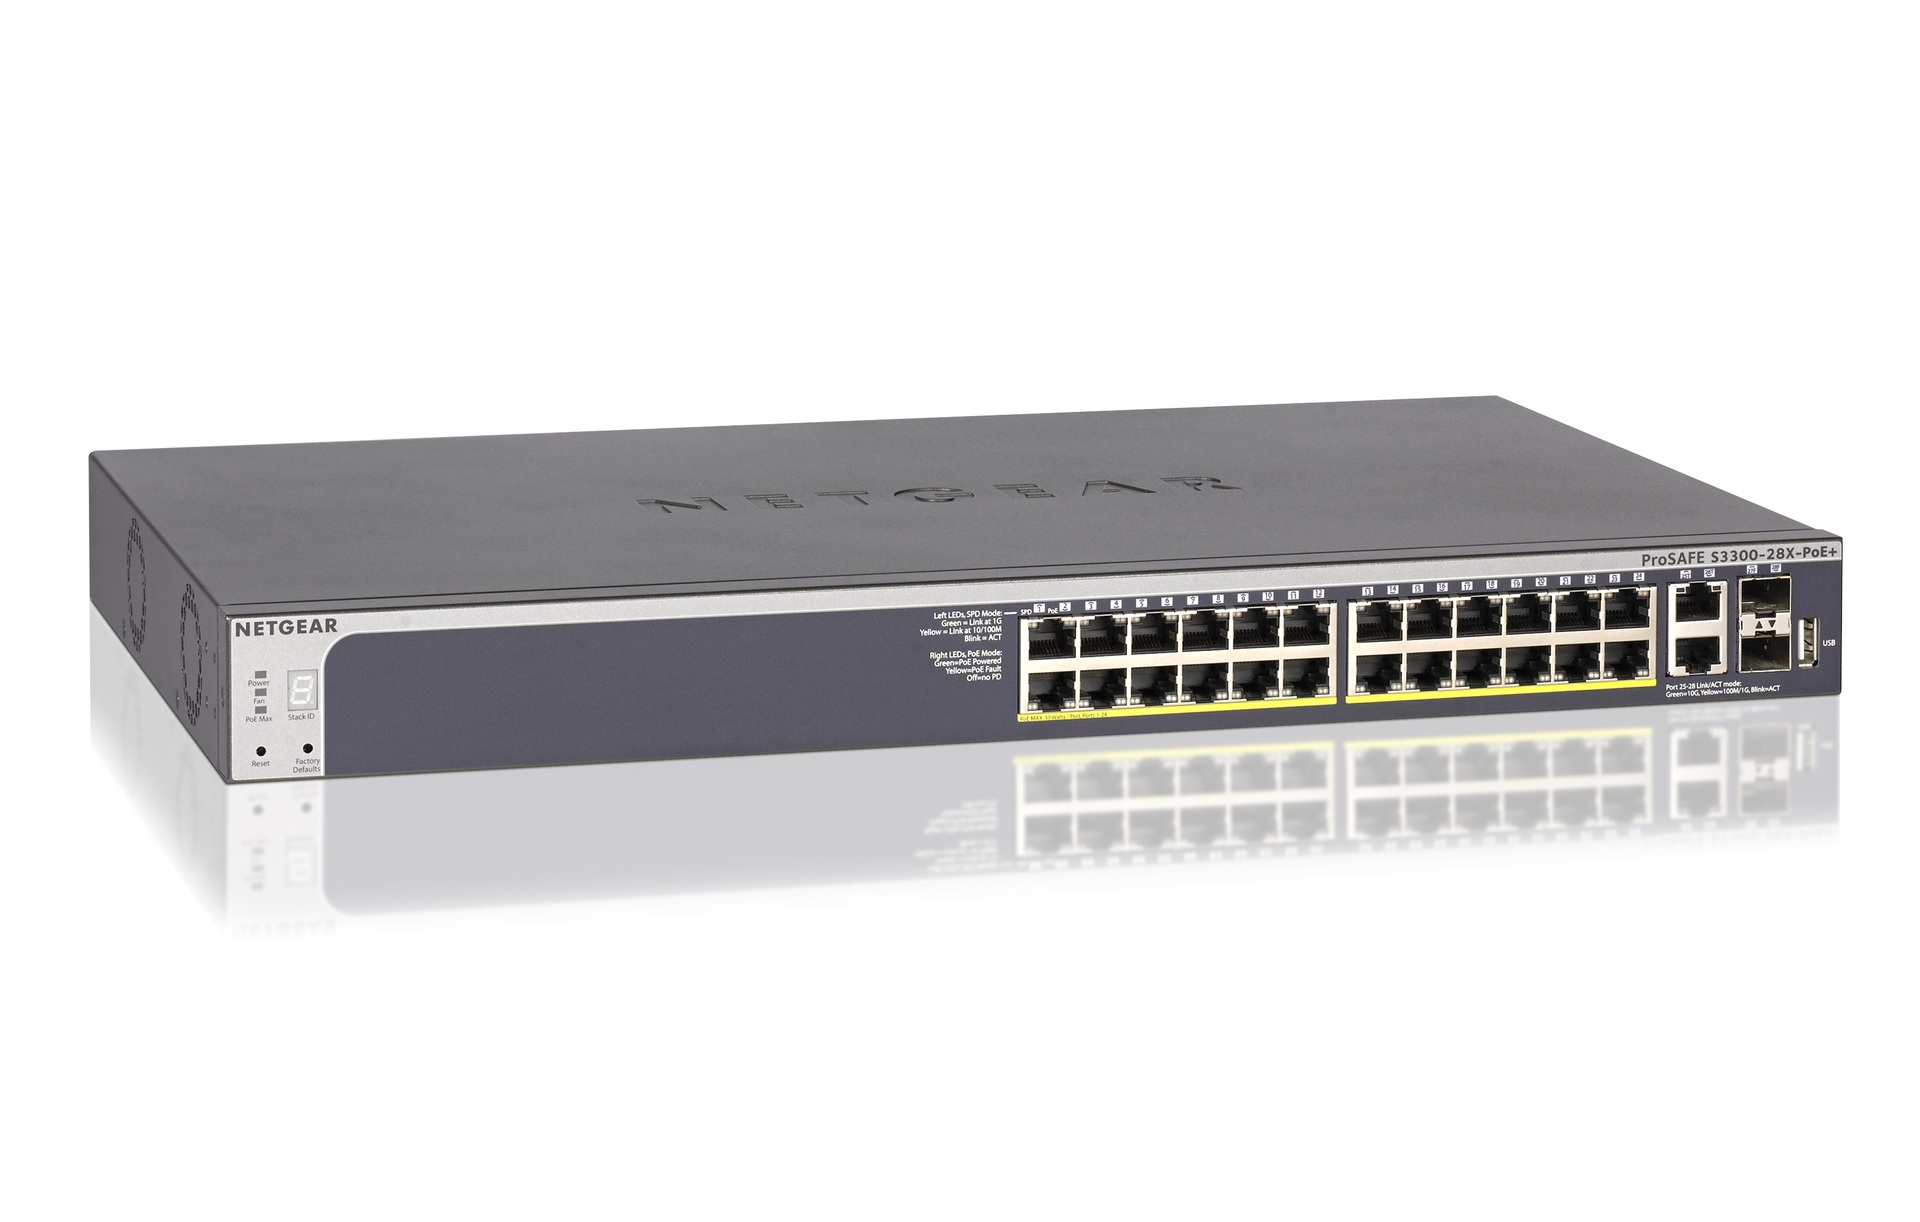 NETGEAR S3300-28X - switch - 28 ports - smart - rack-mountable